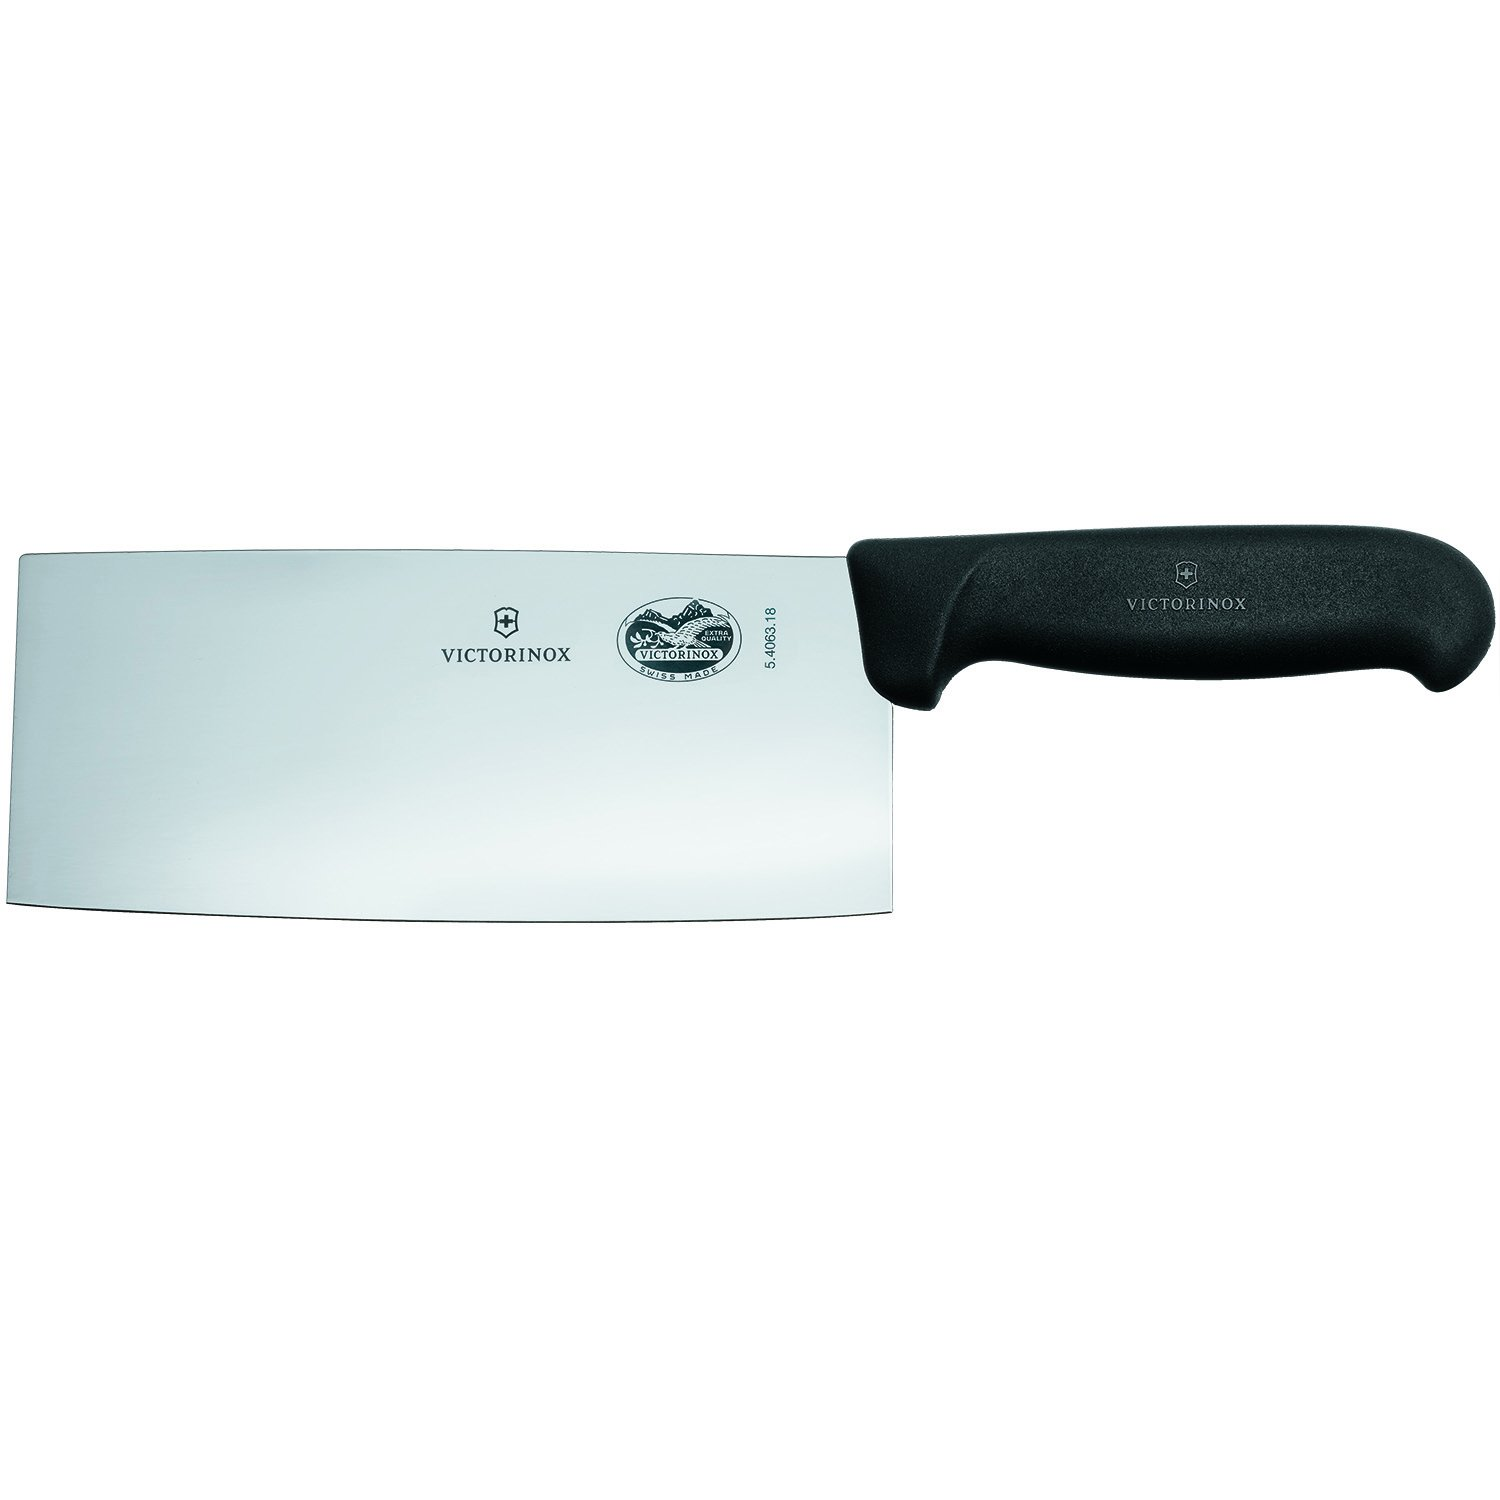 Victorinox 7'' Chinese Classic Chefs Knife Stainless Steel Cleaver Butcher Knife Fibrox Handle Swiss Made